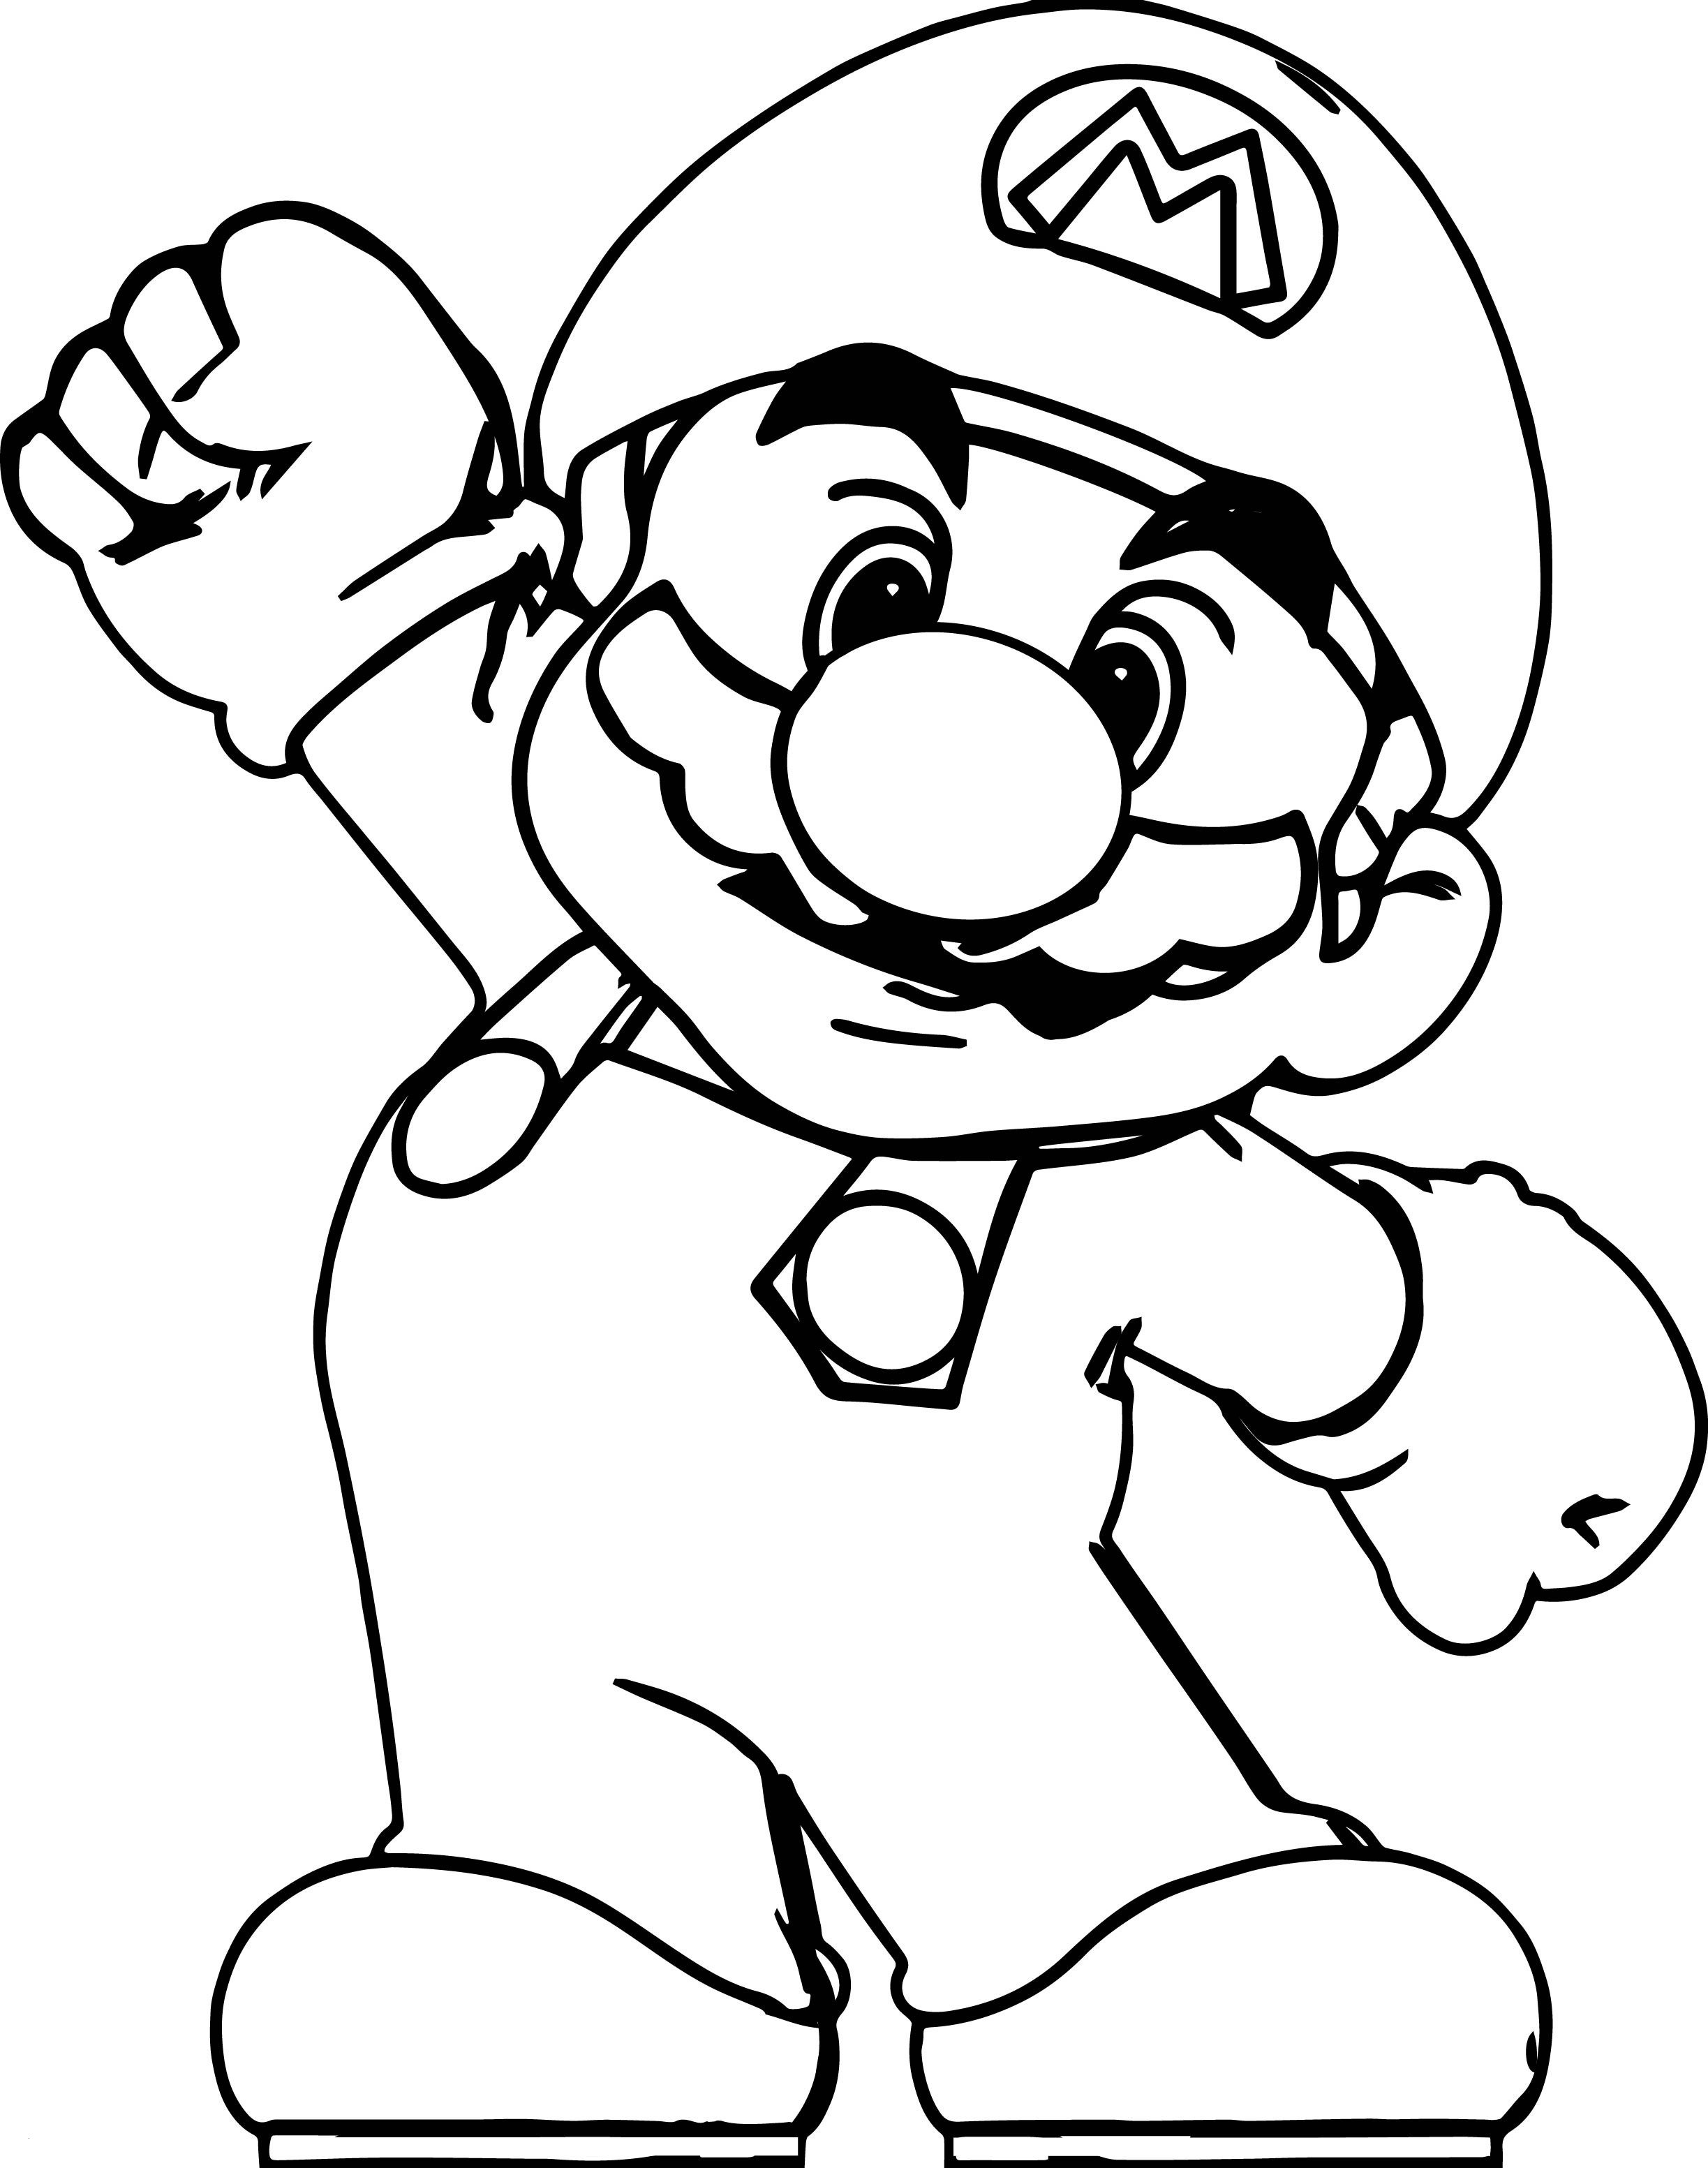 Mario Brothers Drawings | Free download on ClipArtMag